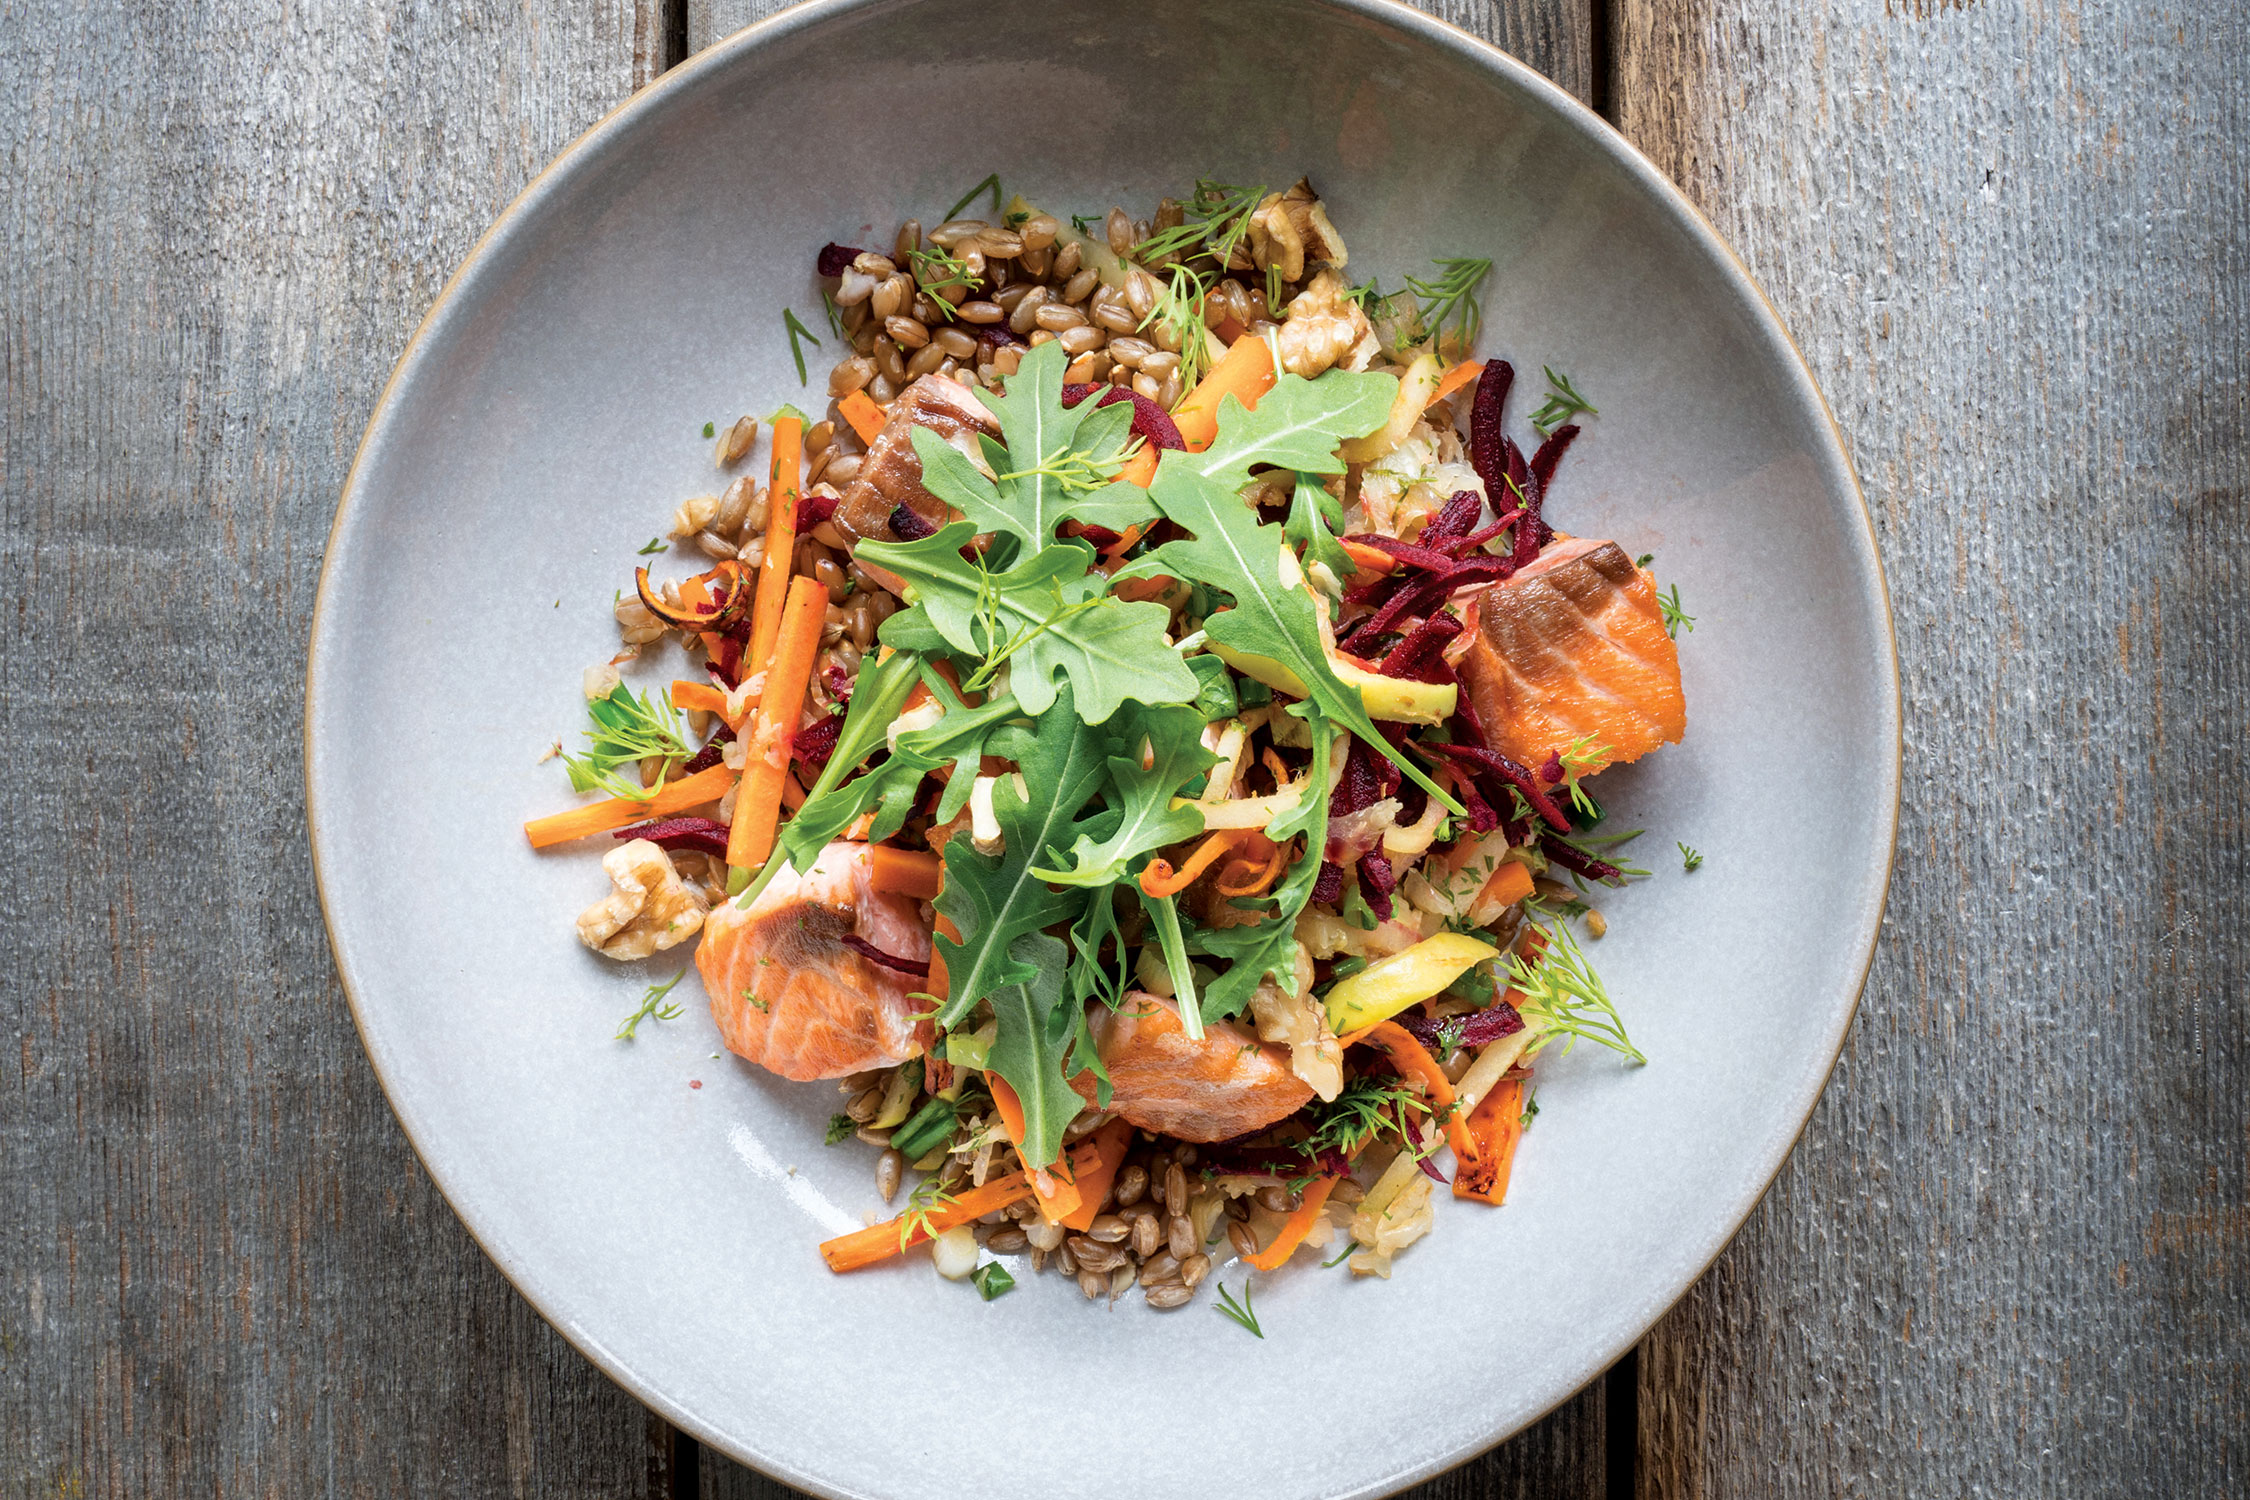 Nordic Char and Rye Stir-Fry